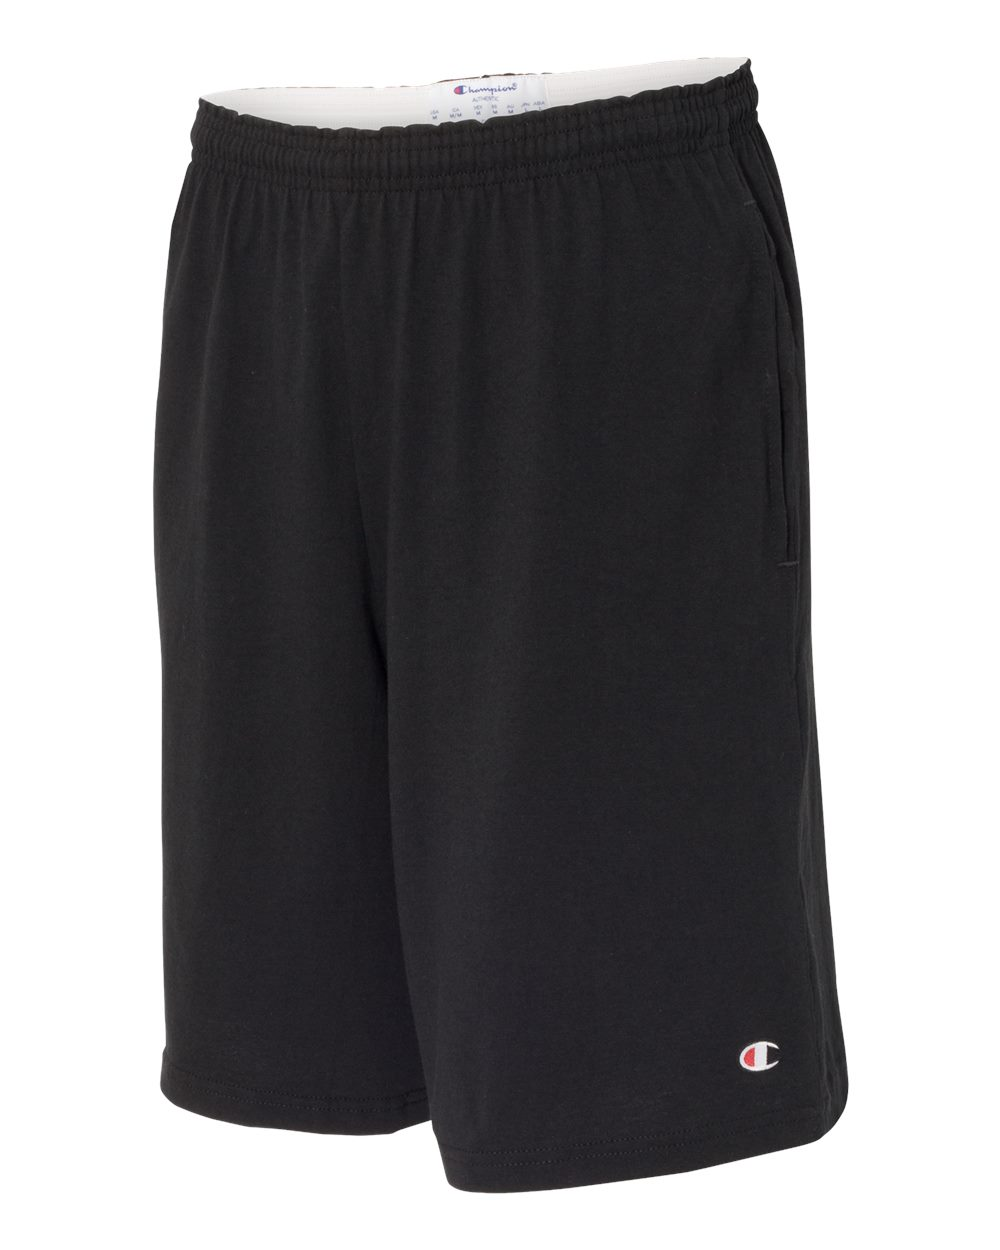 Champion 8180 - 9 Inseam Cotton Jersey Shorts with ...